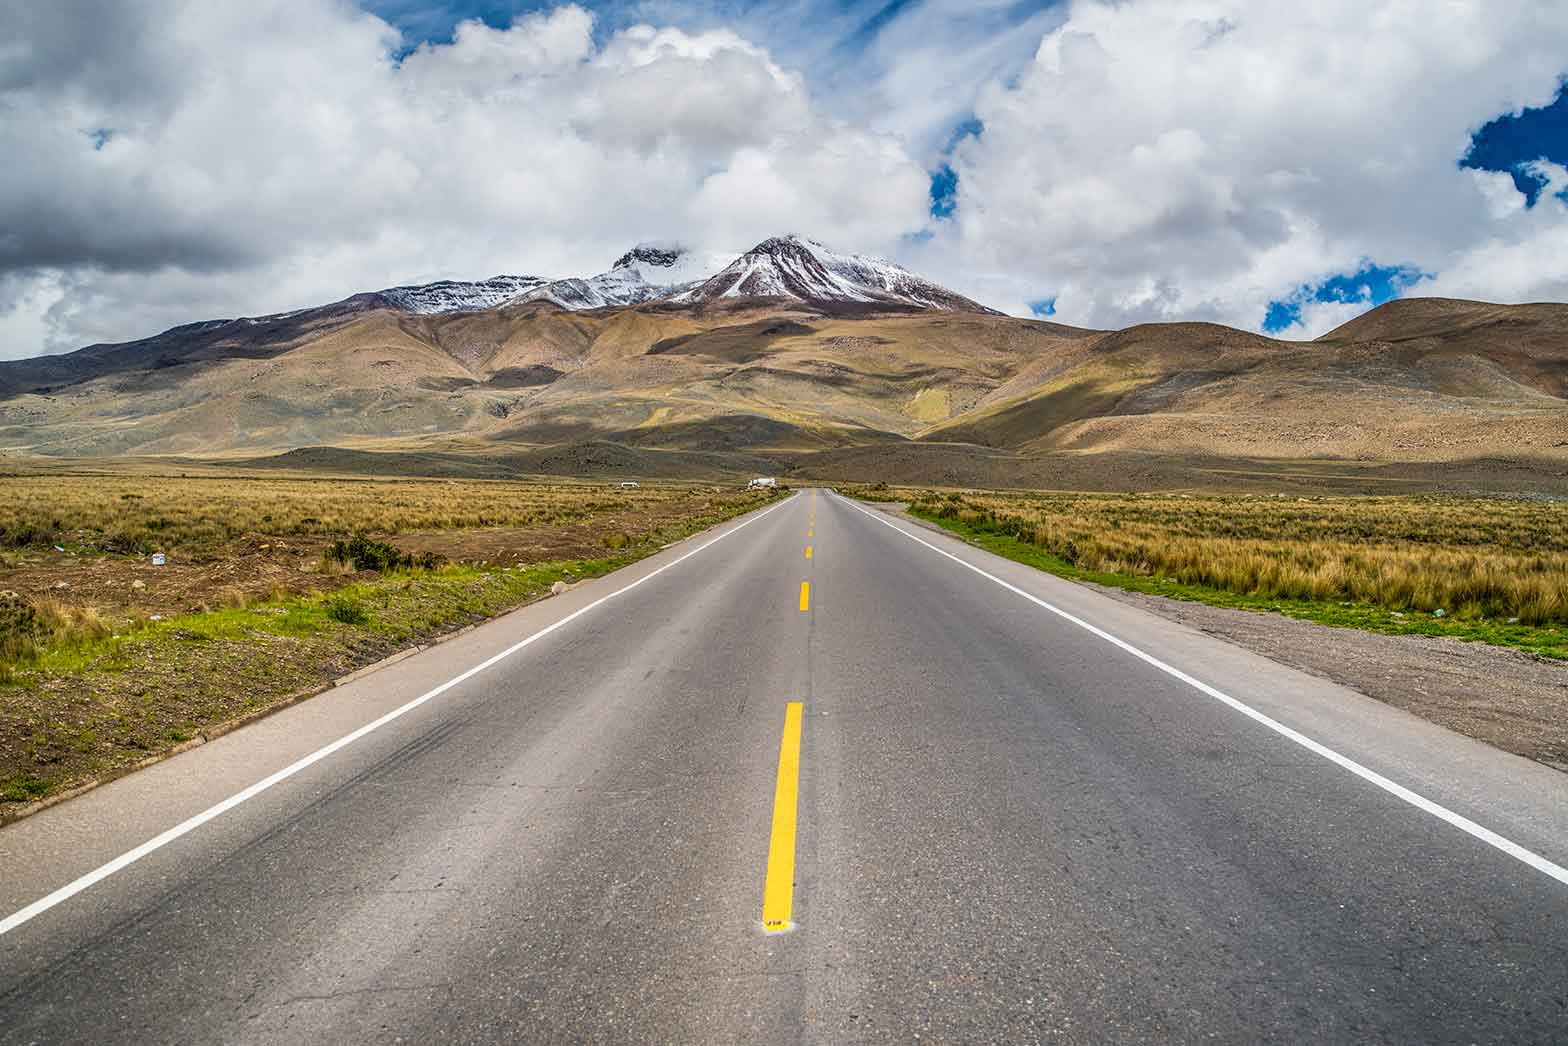 Riding the roads of Peru